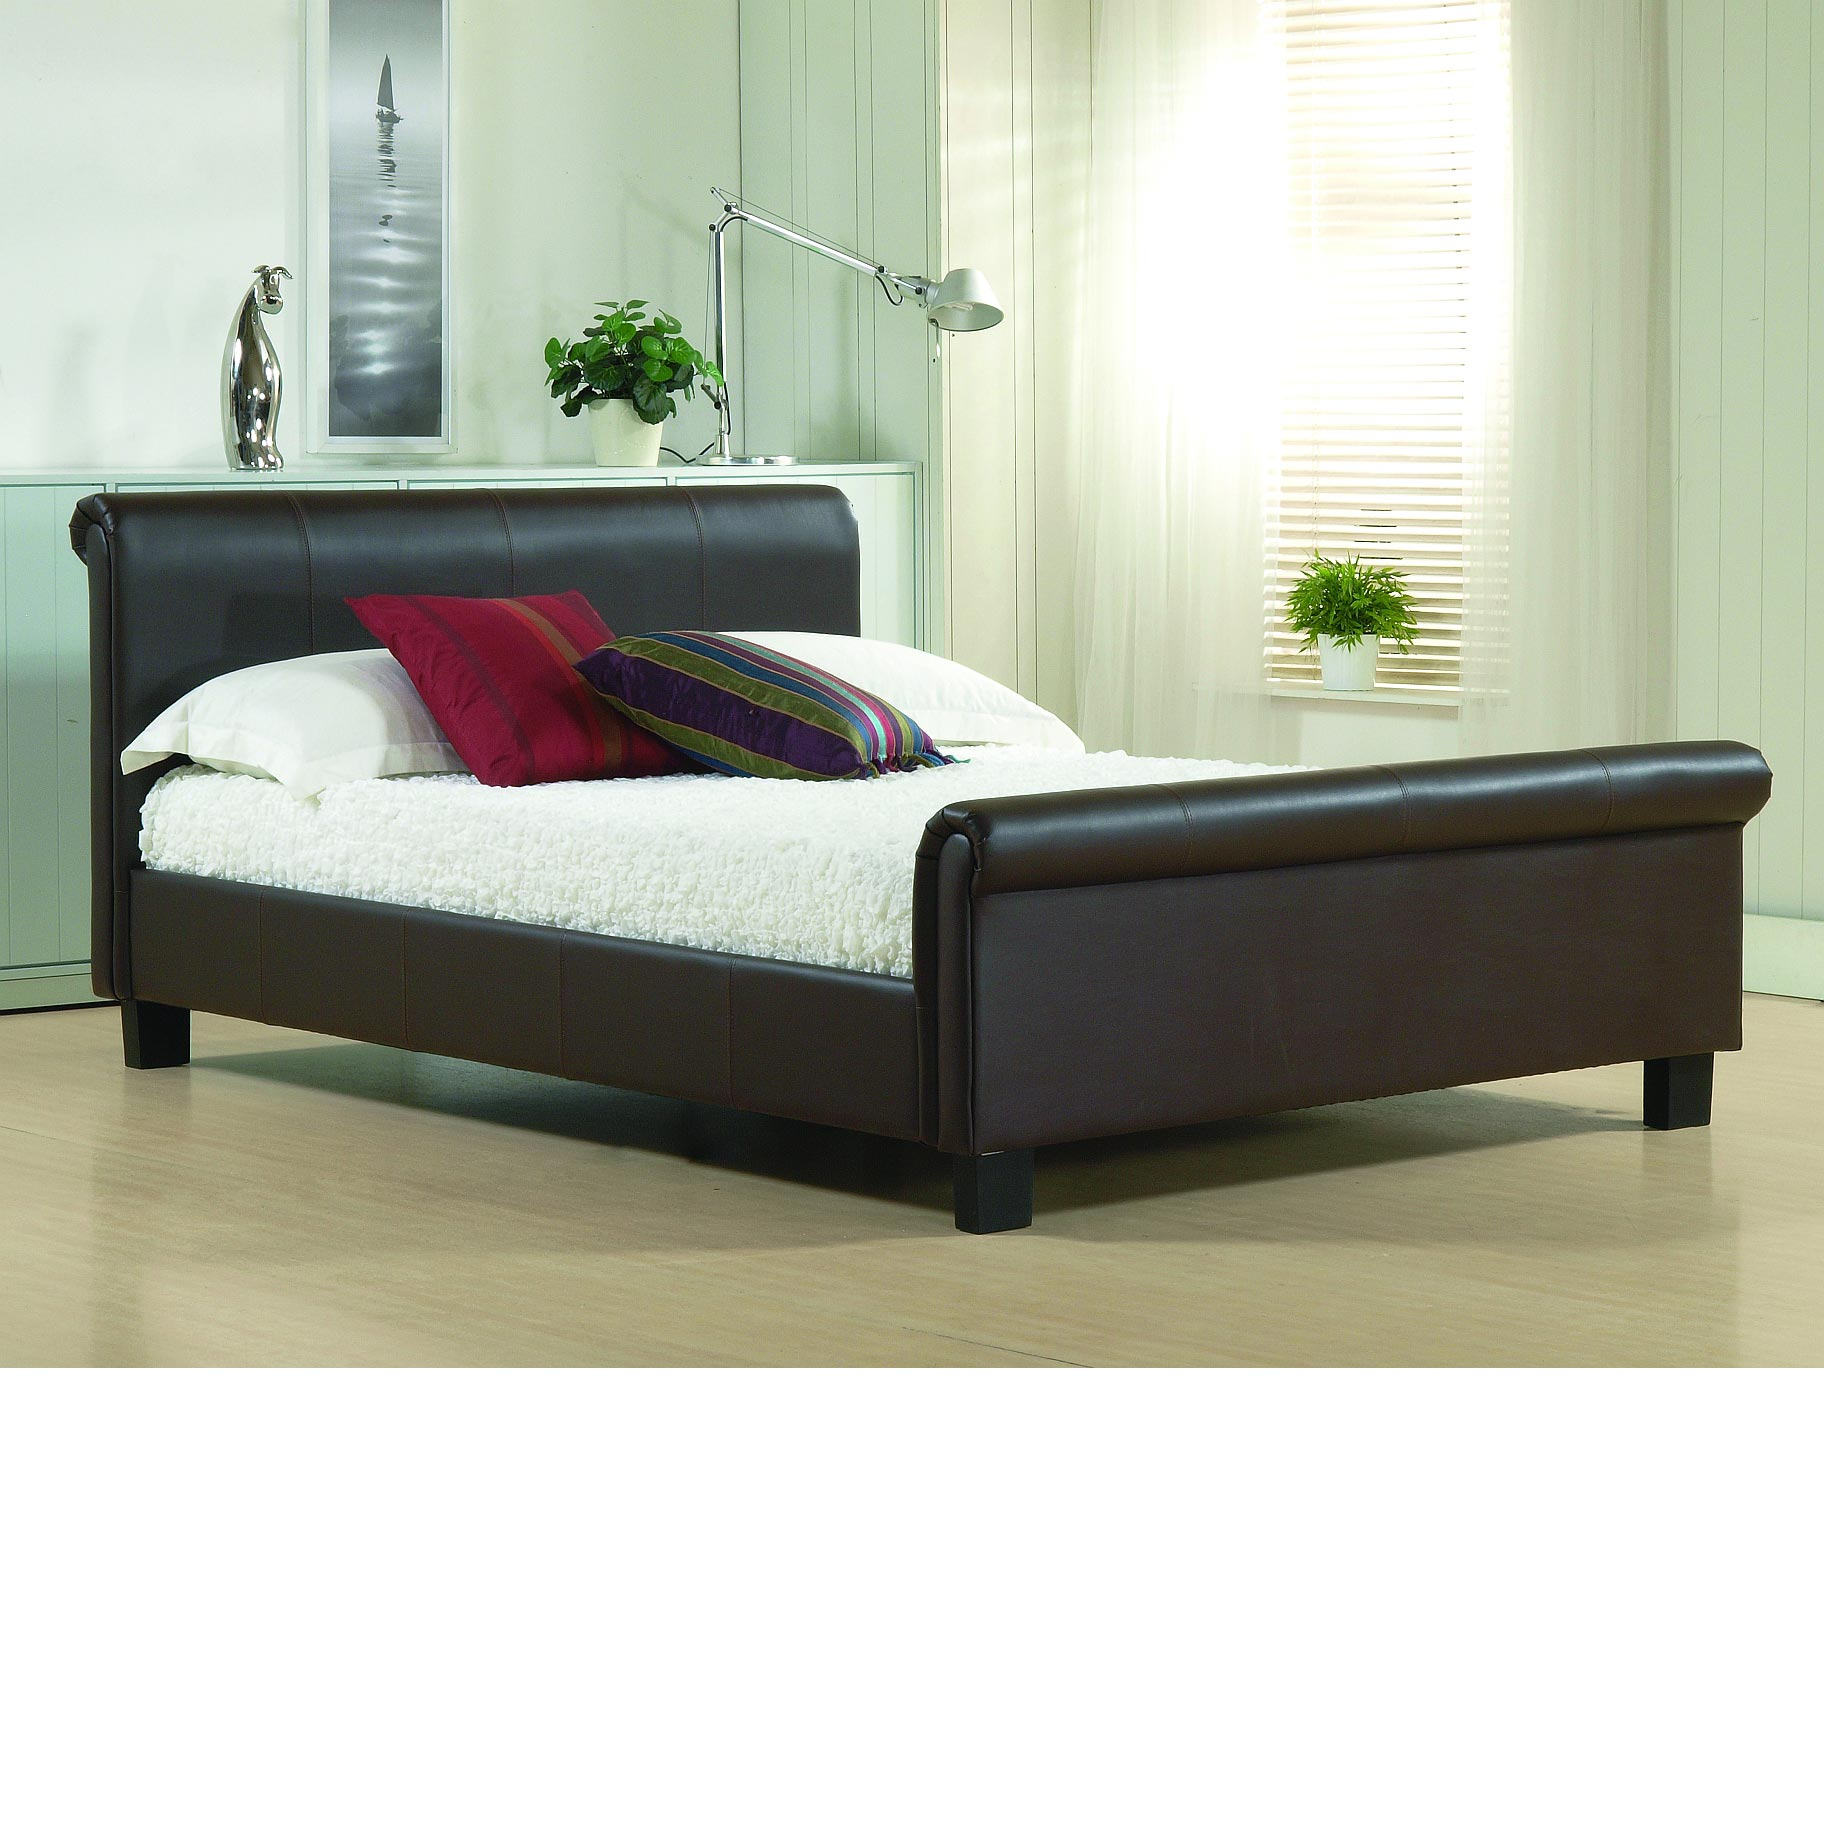 https://www.firstfurniture.co.uk/pub/media/catalog/product/A/u/Aurora-Brown-Leather-Bed-Frame7211.jpg